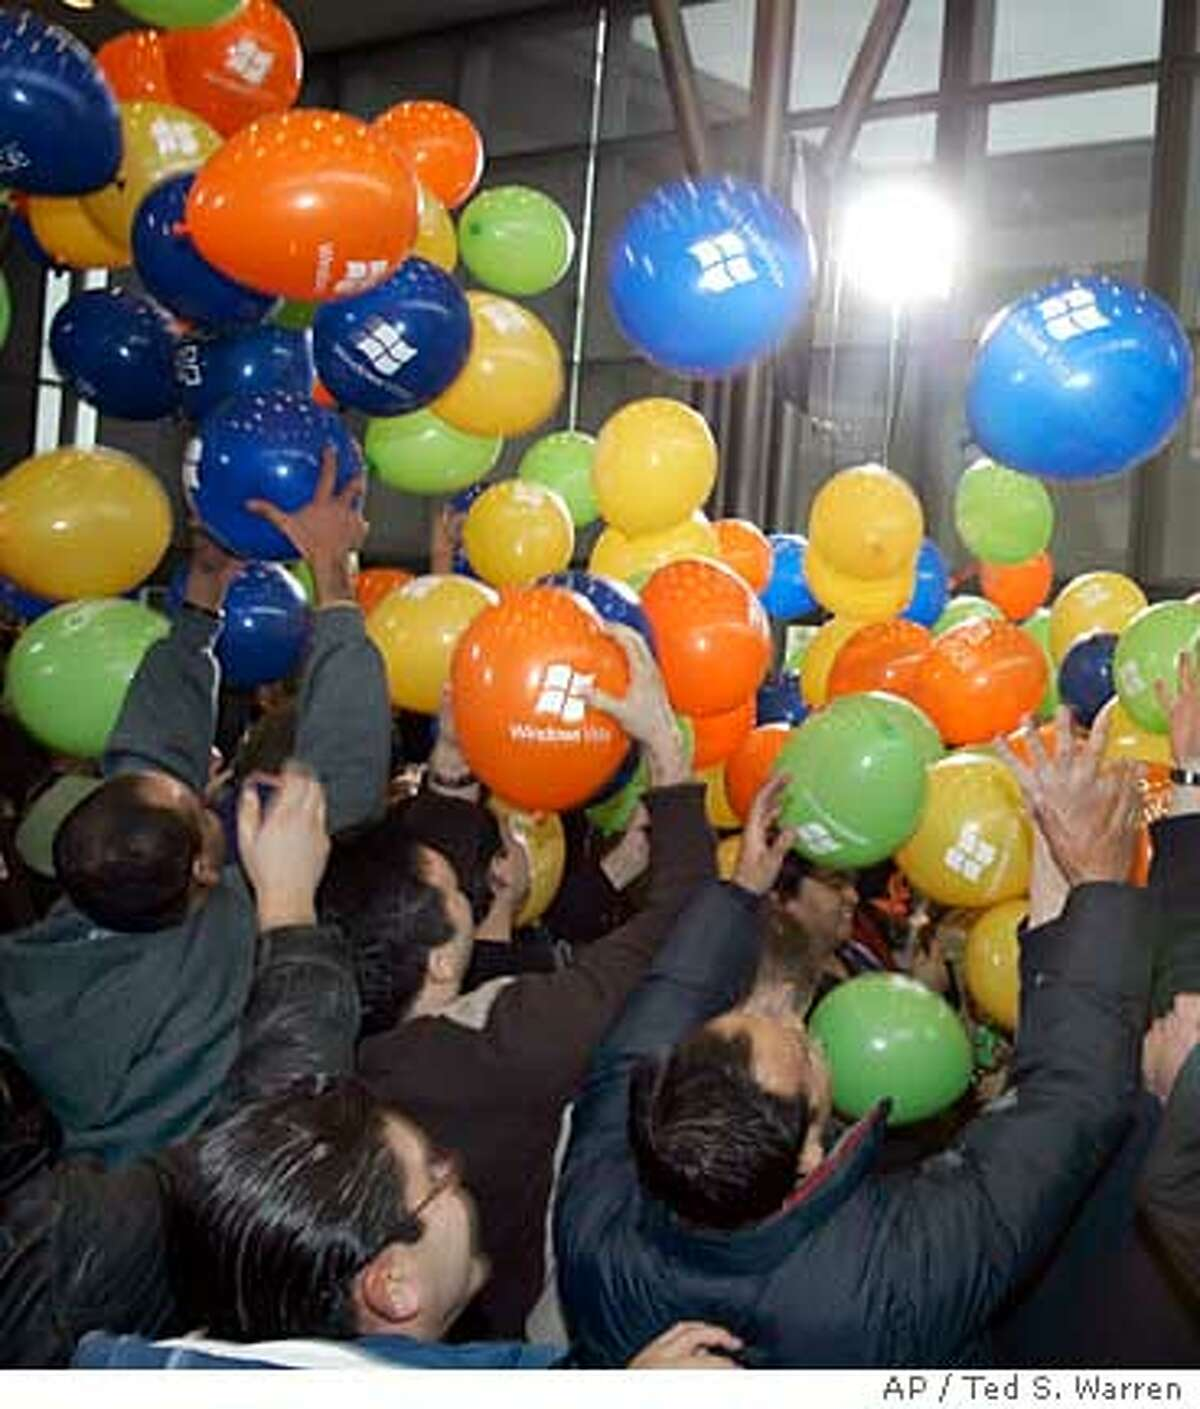 Balloons fall in a Microsoft Corp. cafeteria as employees celebrate the release of Microsoft's Windows Vista computer operating system Monday, Jan. 29, 2007 at the company's headquarters in Redmond, Wash. Vista goes on sale Tuesday. (AP Photo/Ted S. Warren)